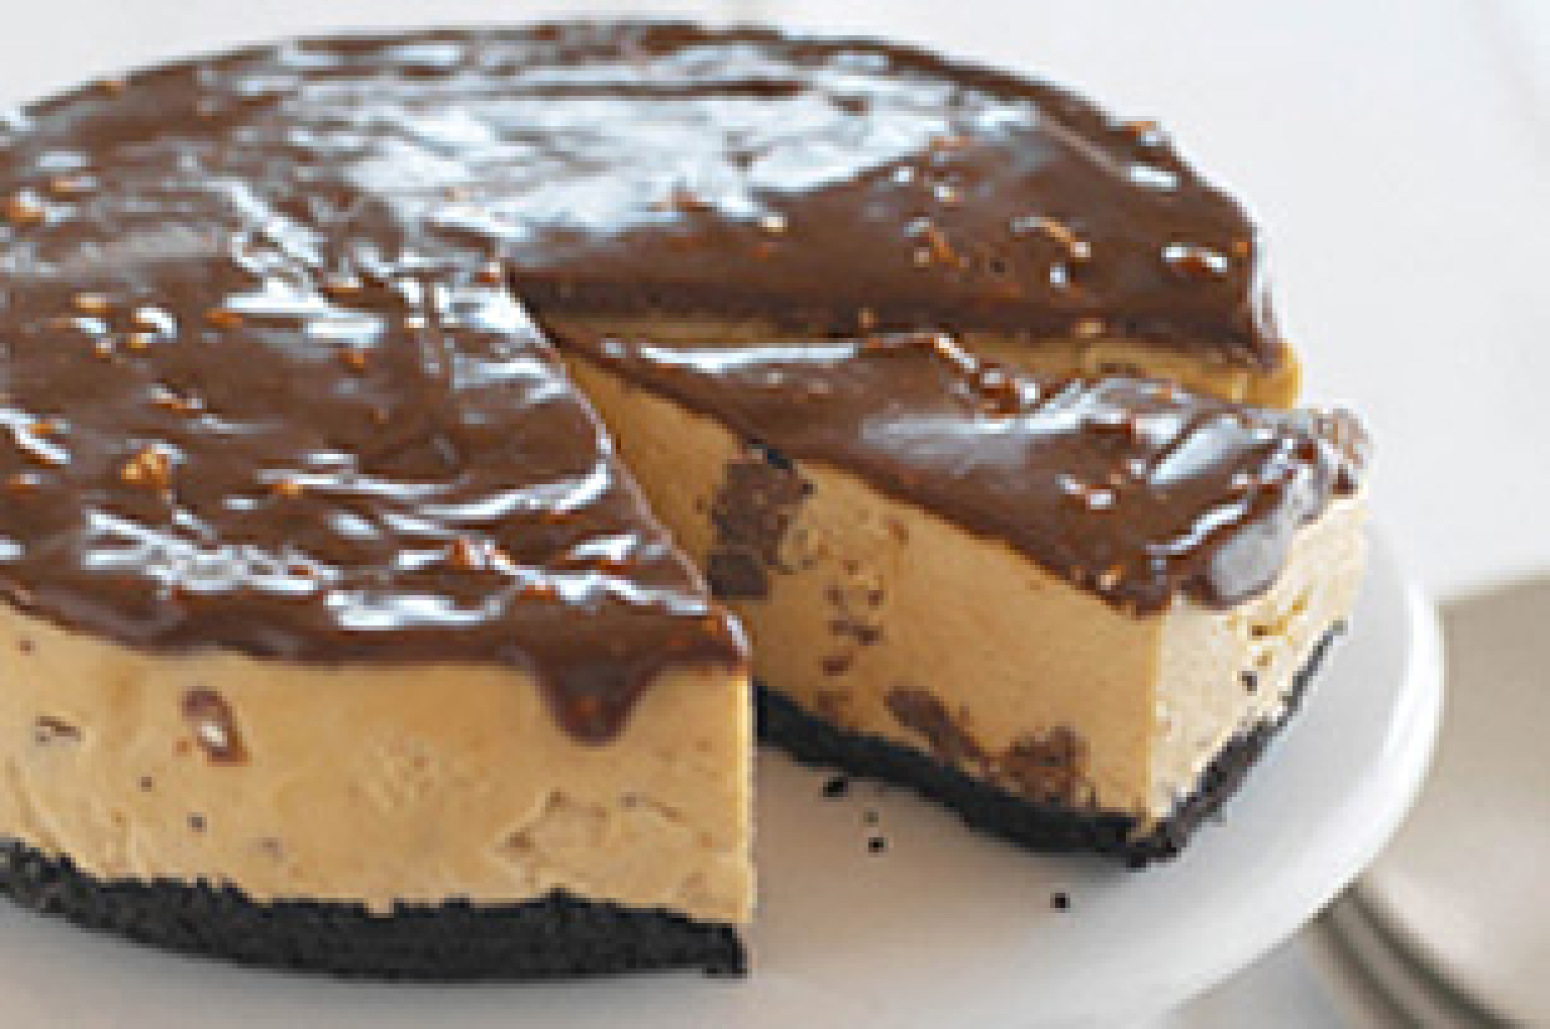 No bake peanut butter cheesecake recipe 7 just a pinch recipes - Dessert leger et rapide sans cuisson ...